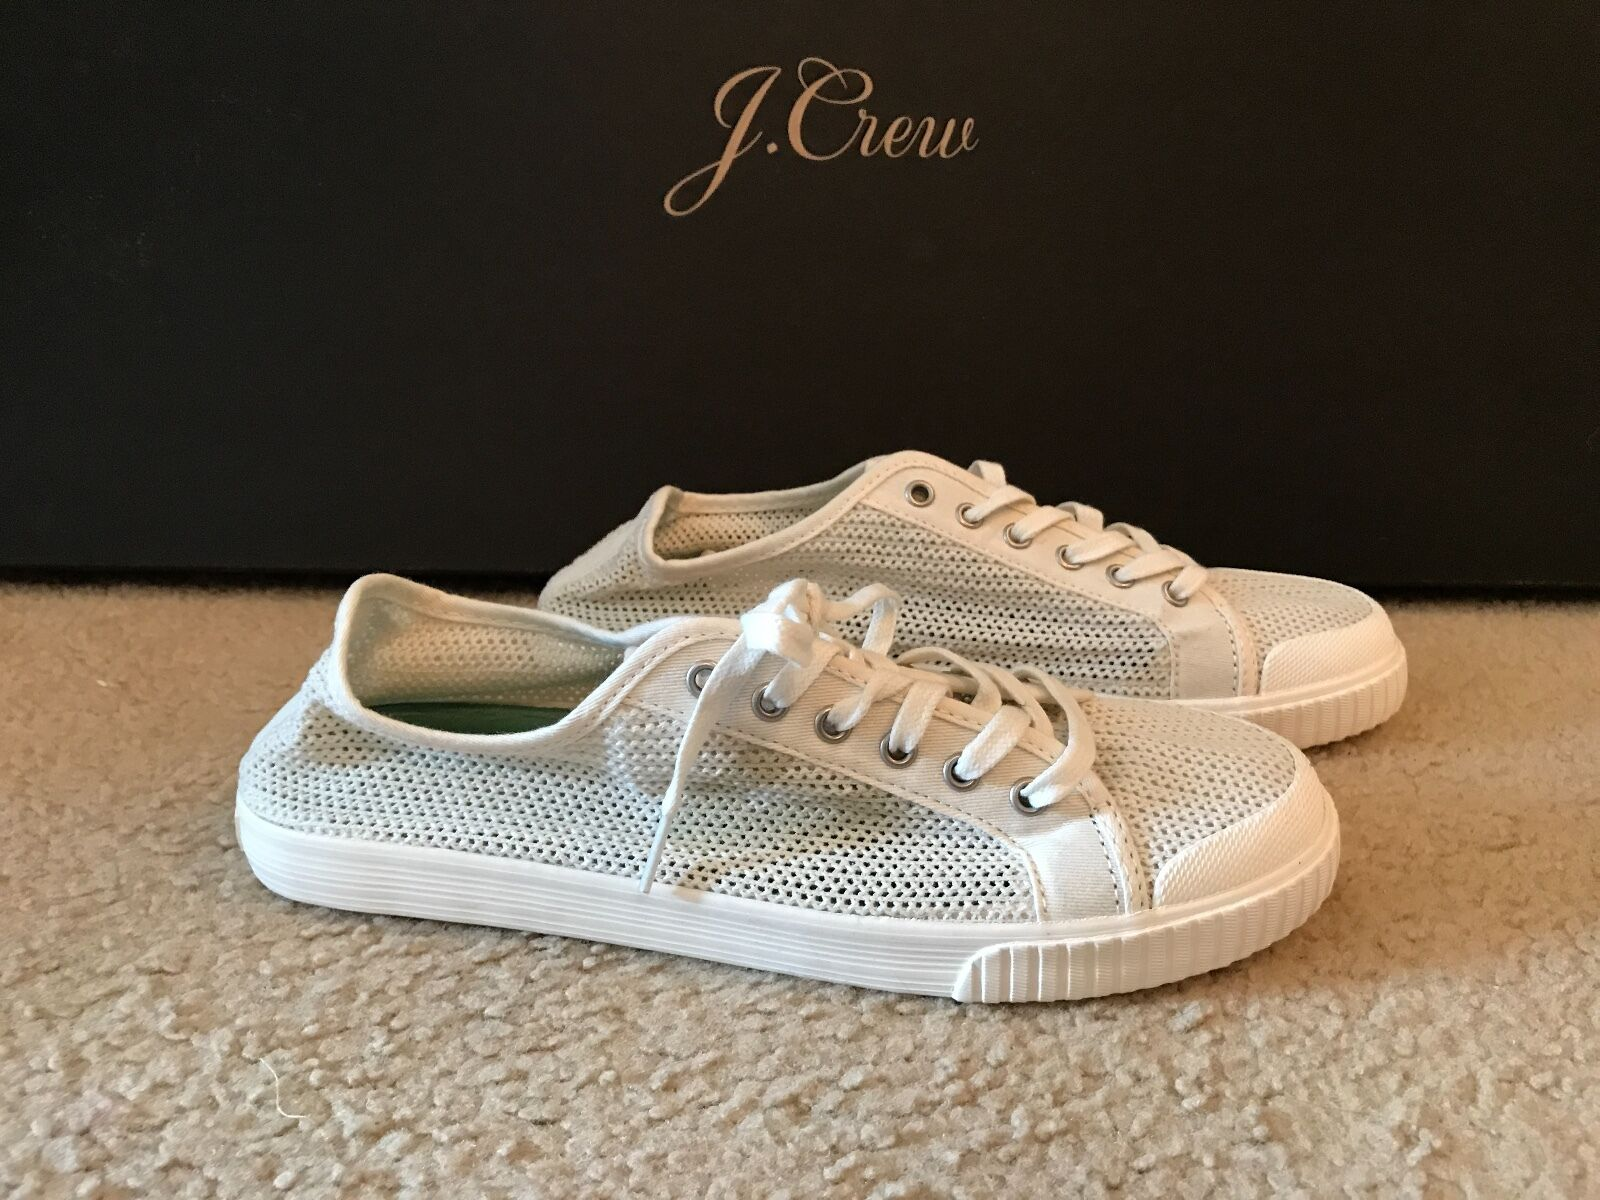 TRETORN FOR JCREW TOURNAMENT NET SNEAKERS SIZE 9,5M WEISS C2124